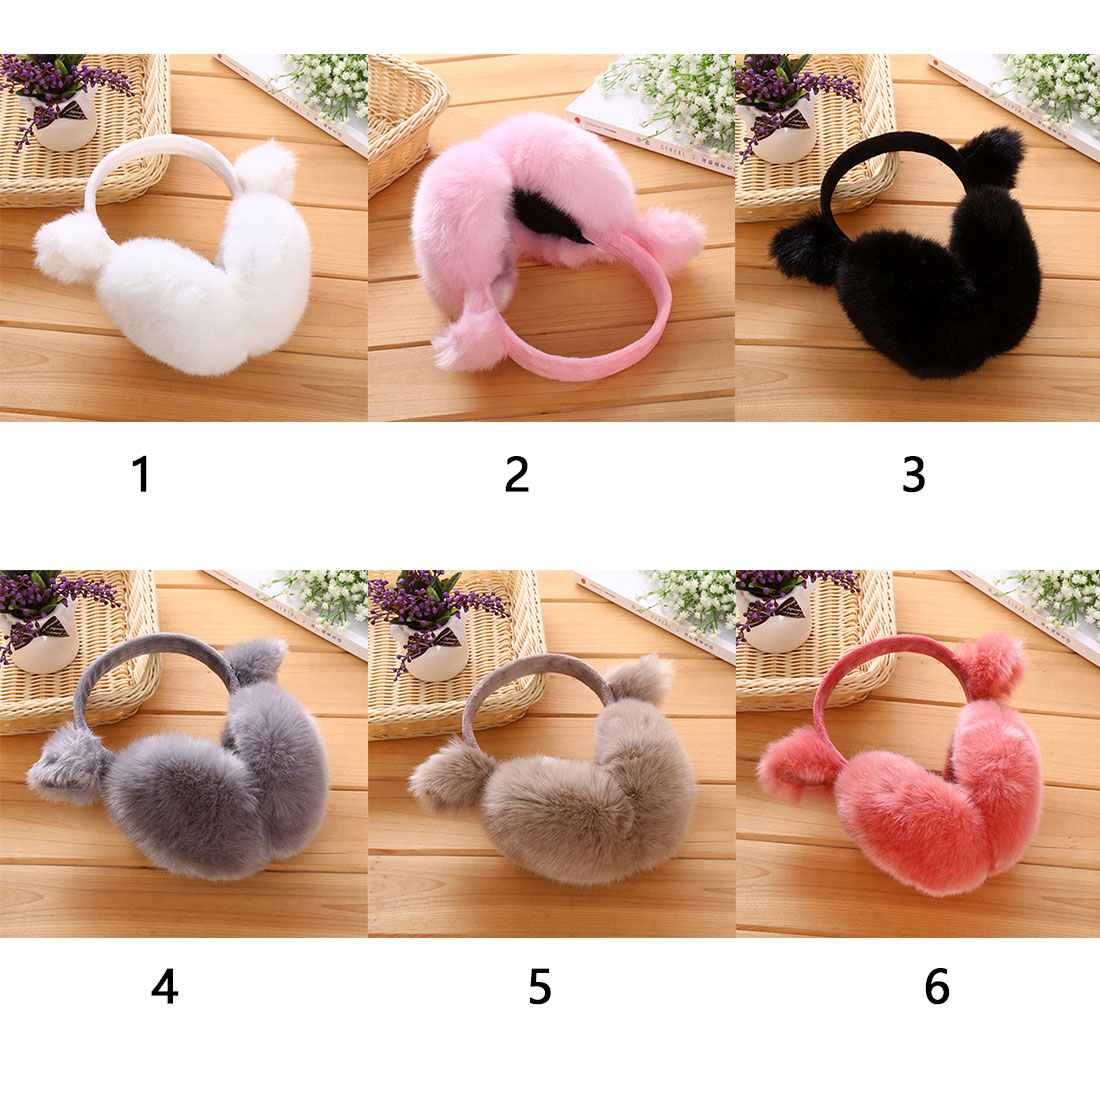 2017 Charming Fashion Rabbit Winter Earmuffs For Women Warm Fur Earmuffs Winter Warm Ear Warmers Gifts For Girls Female